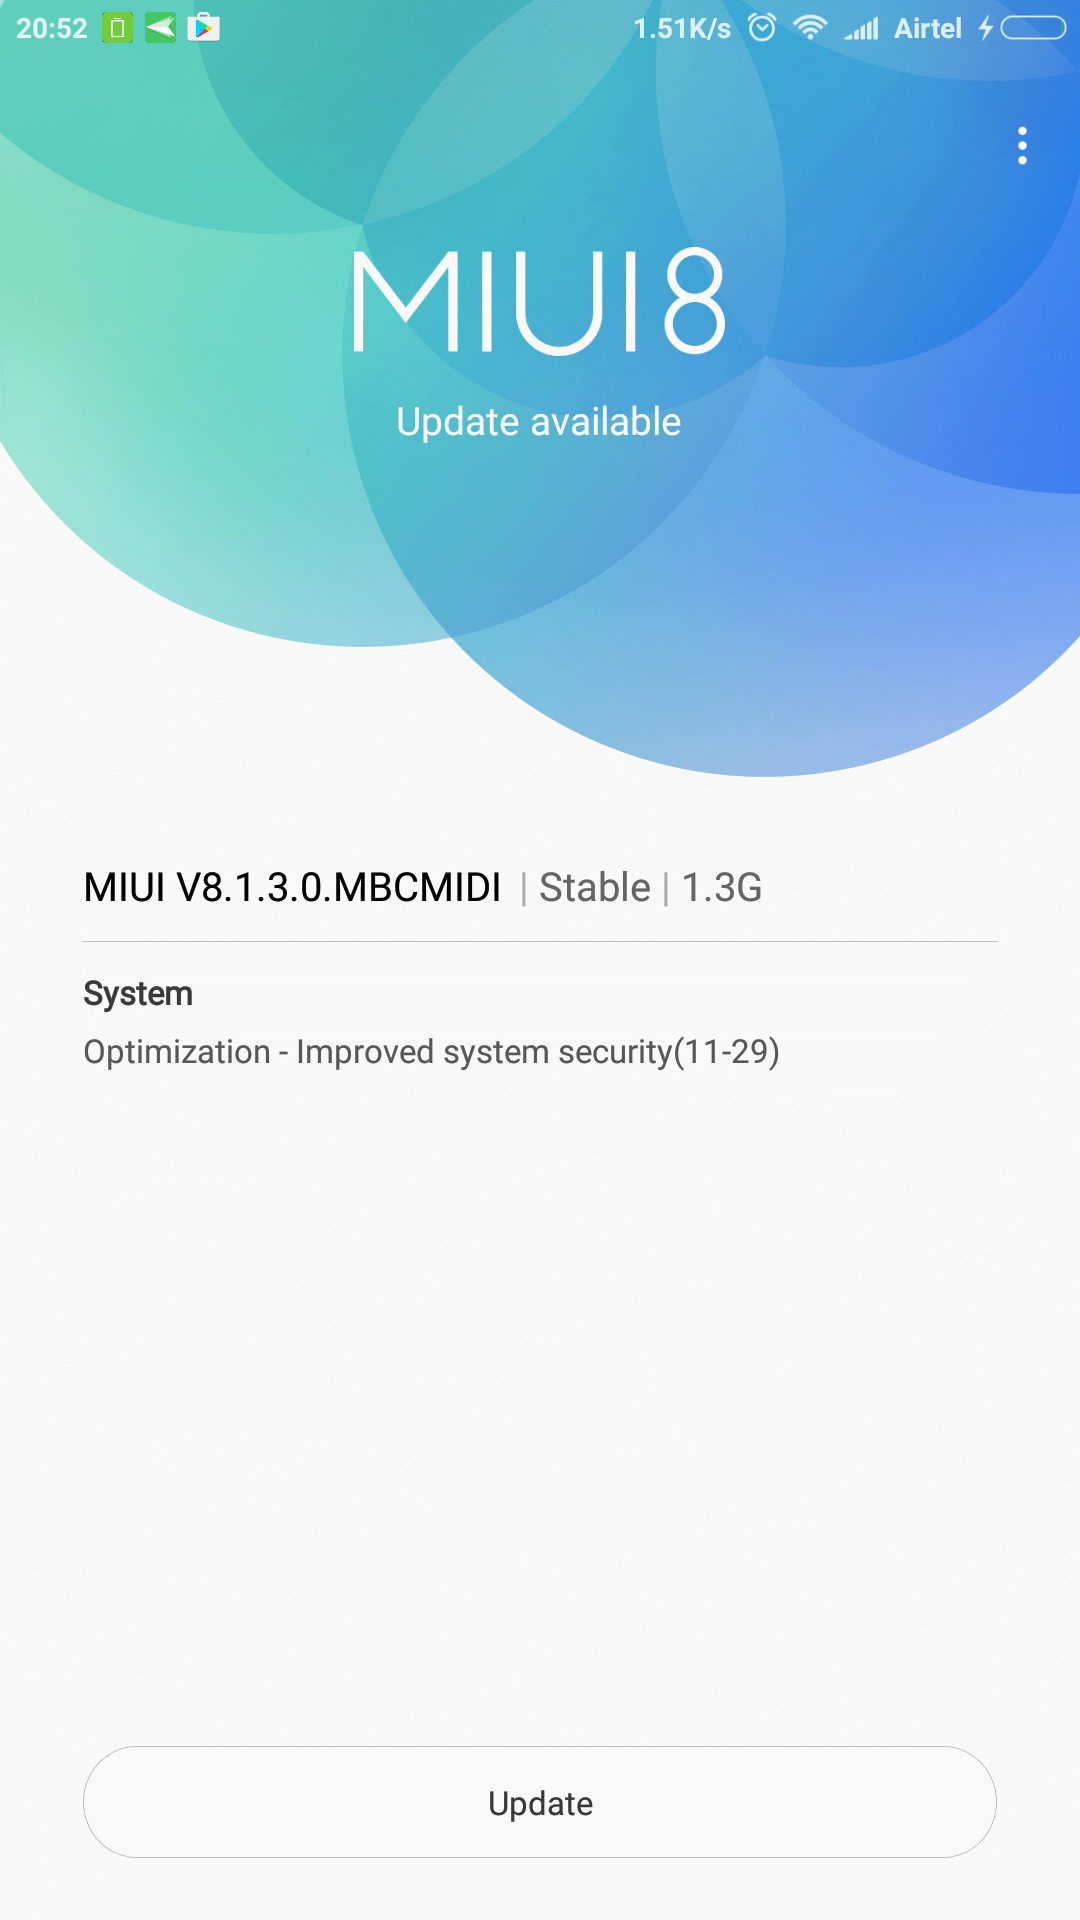 Update your OS